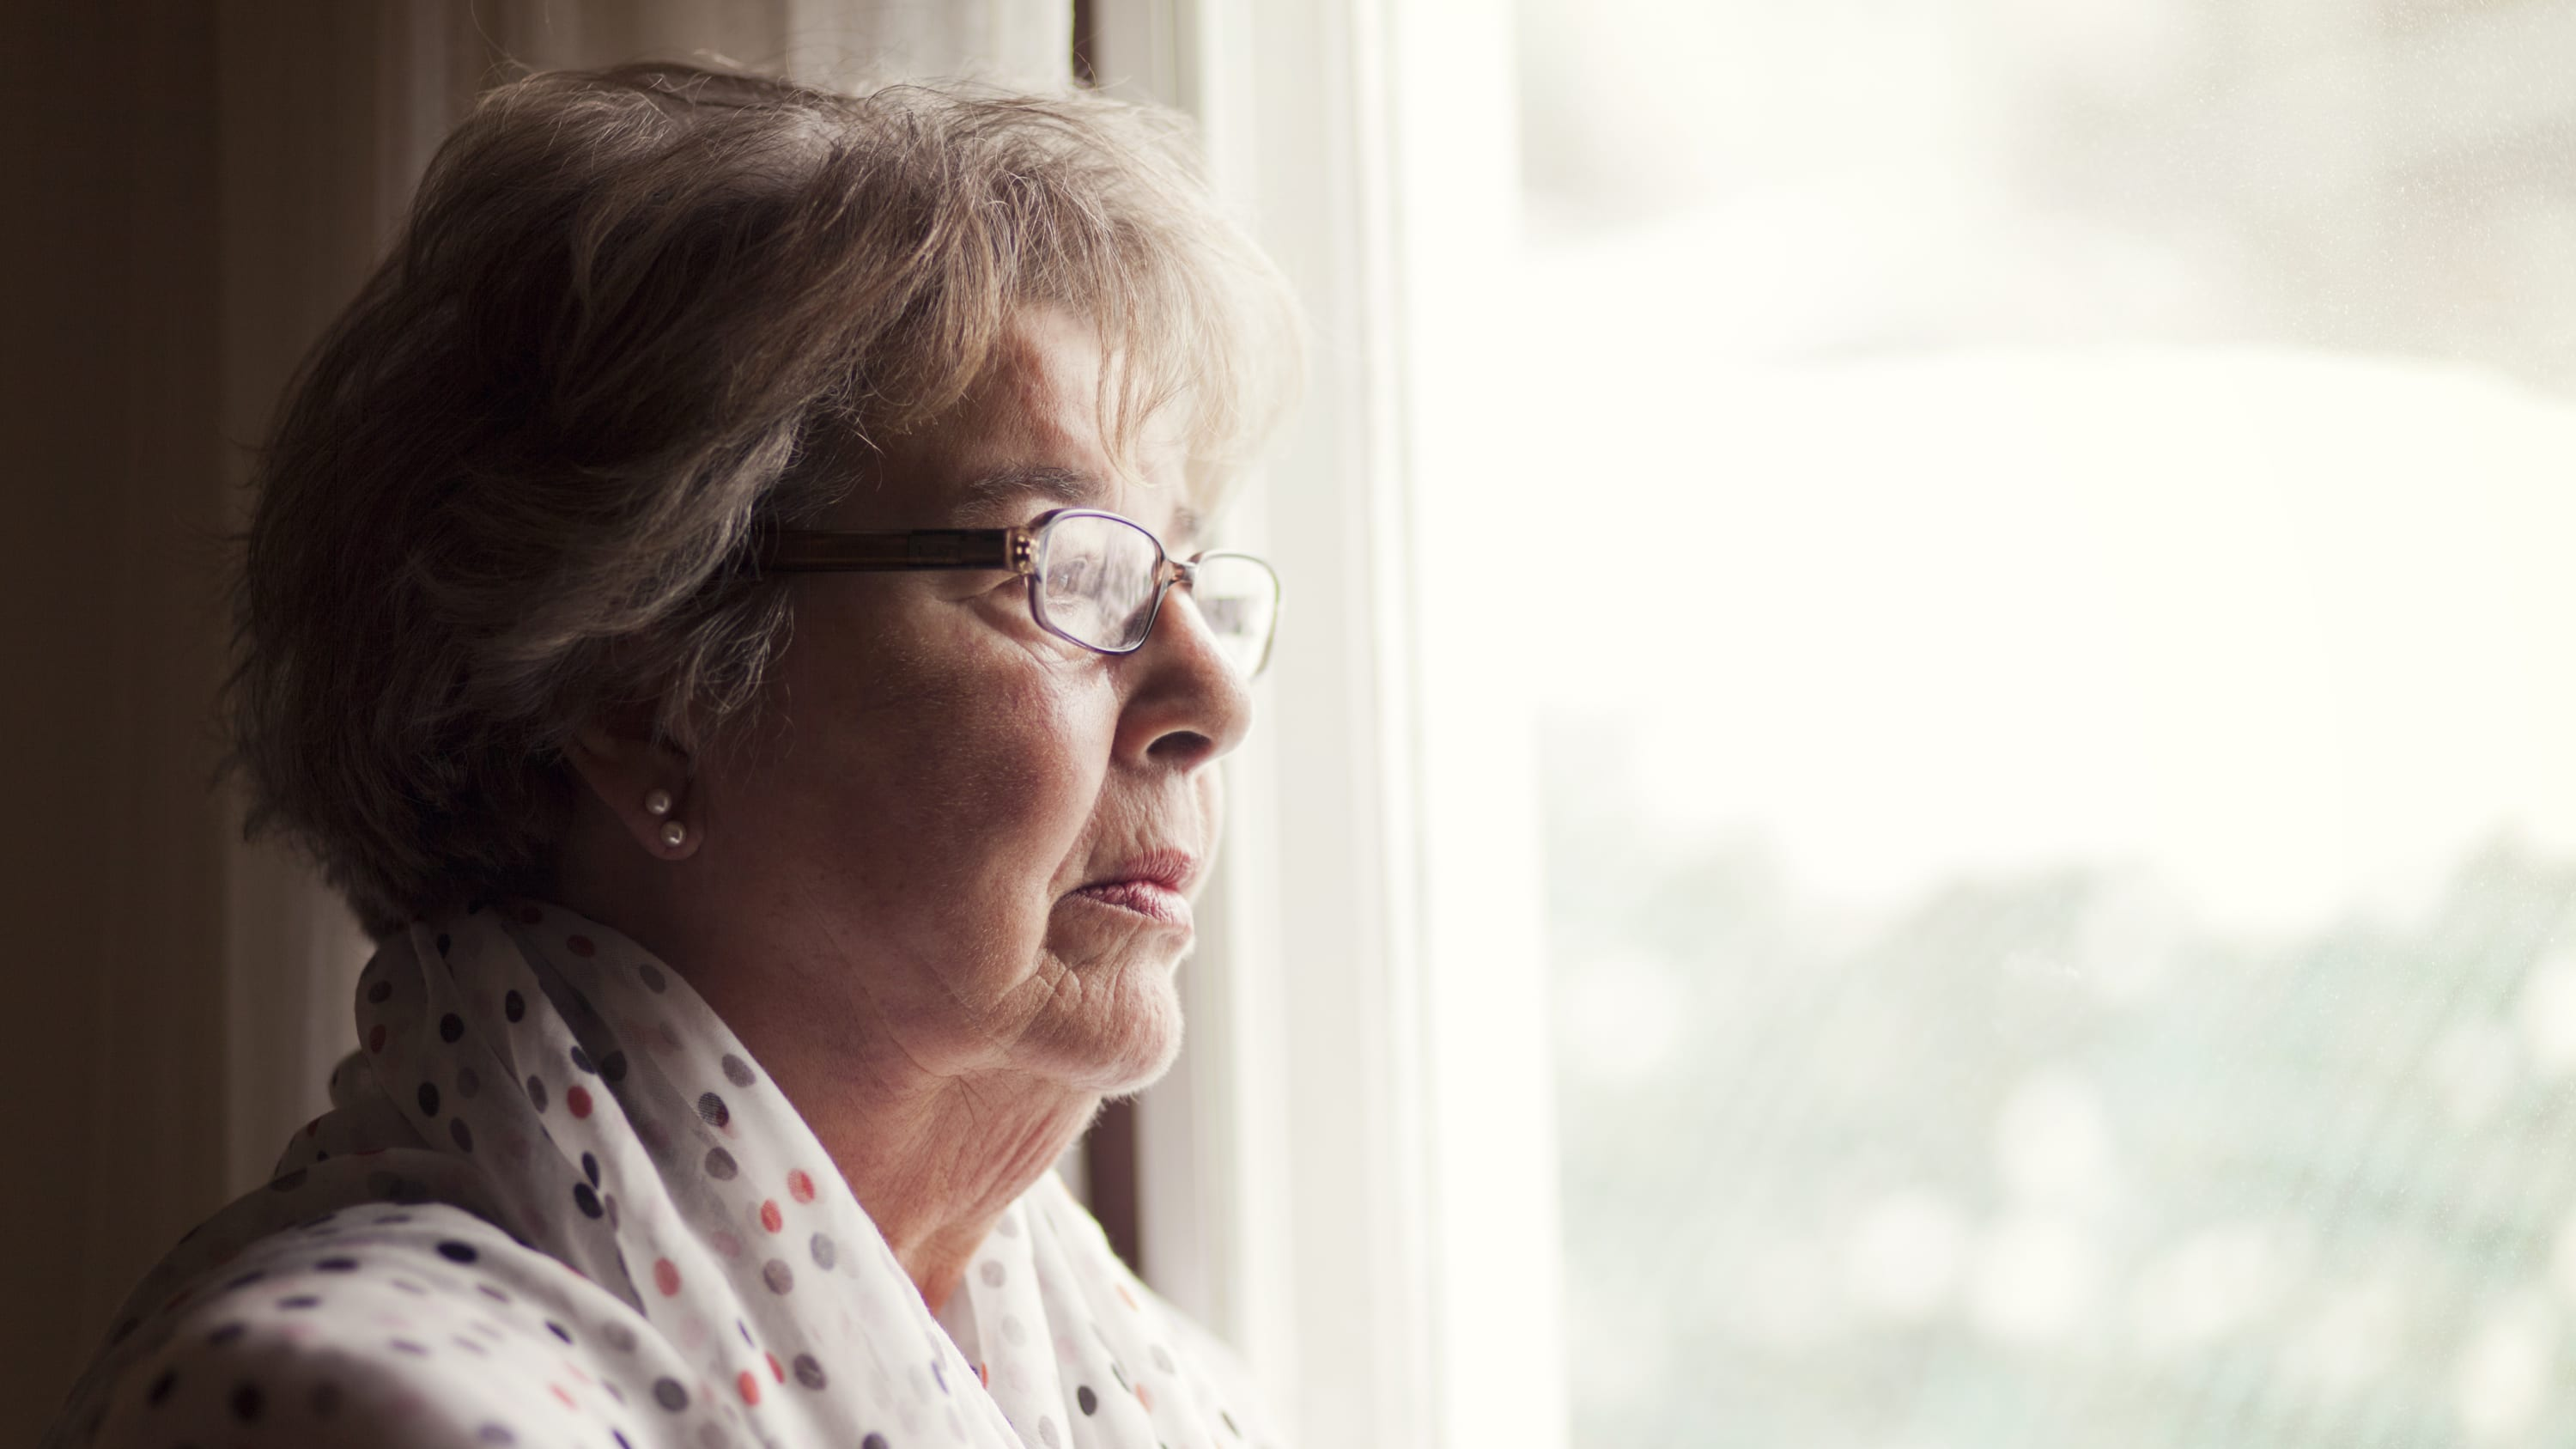 Depression Of A Senior Woman, possibly after a Lynch Syndrome diagnosis